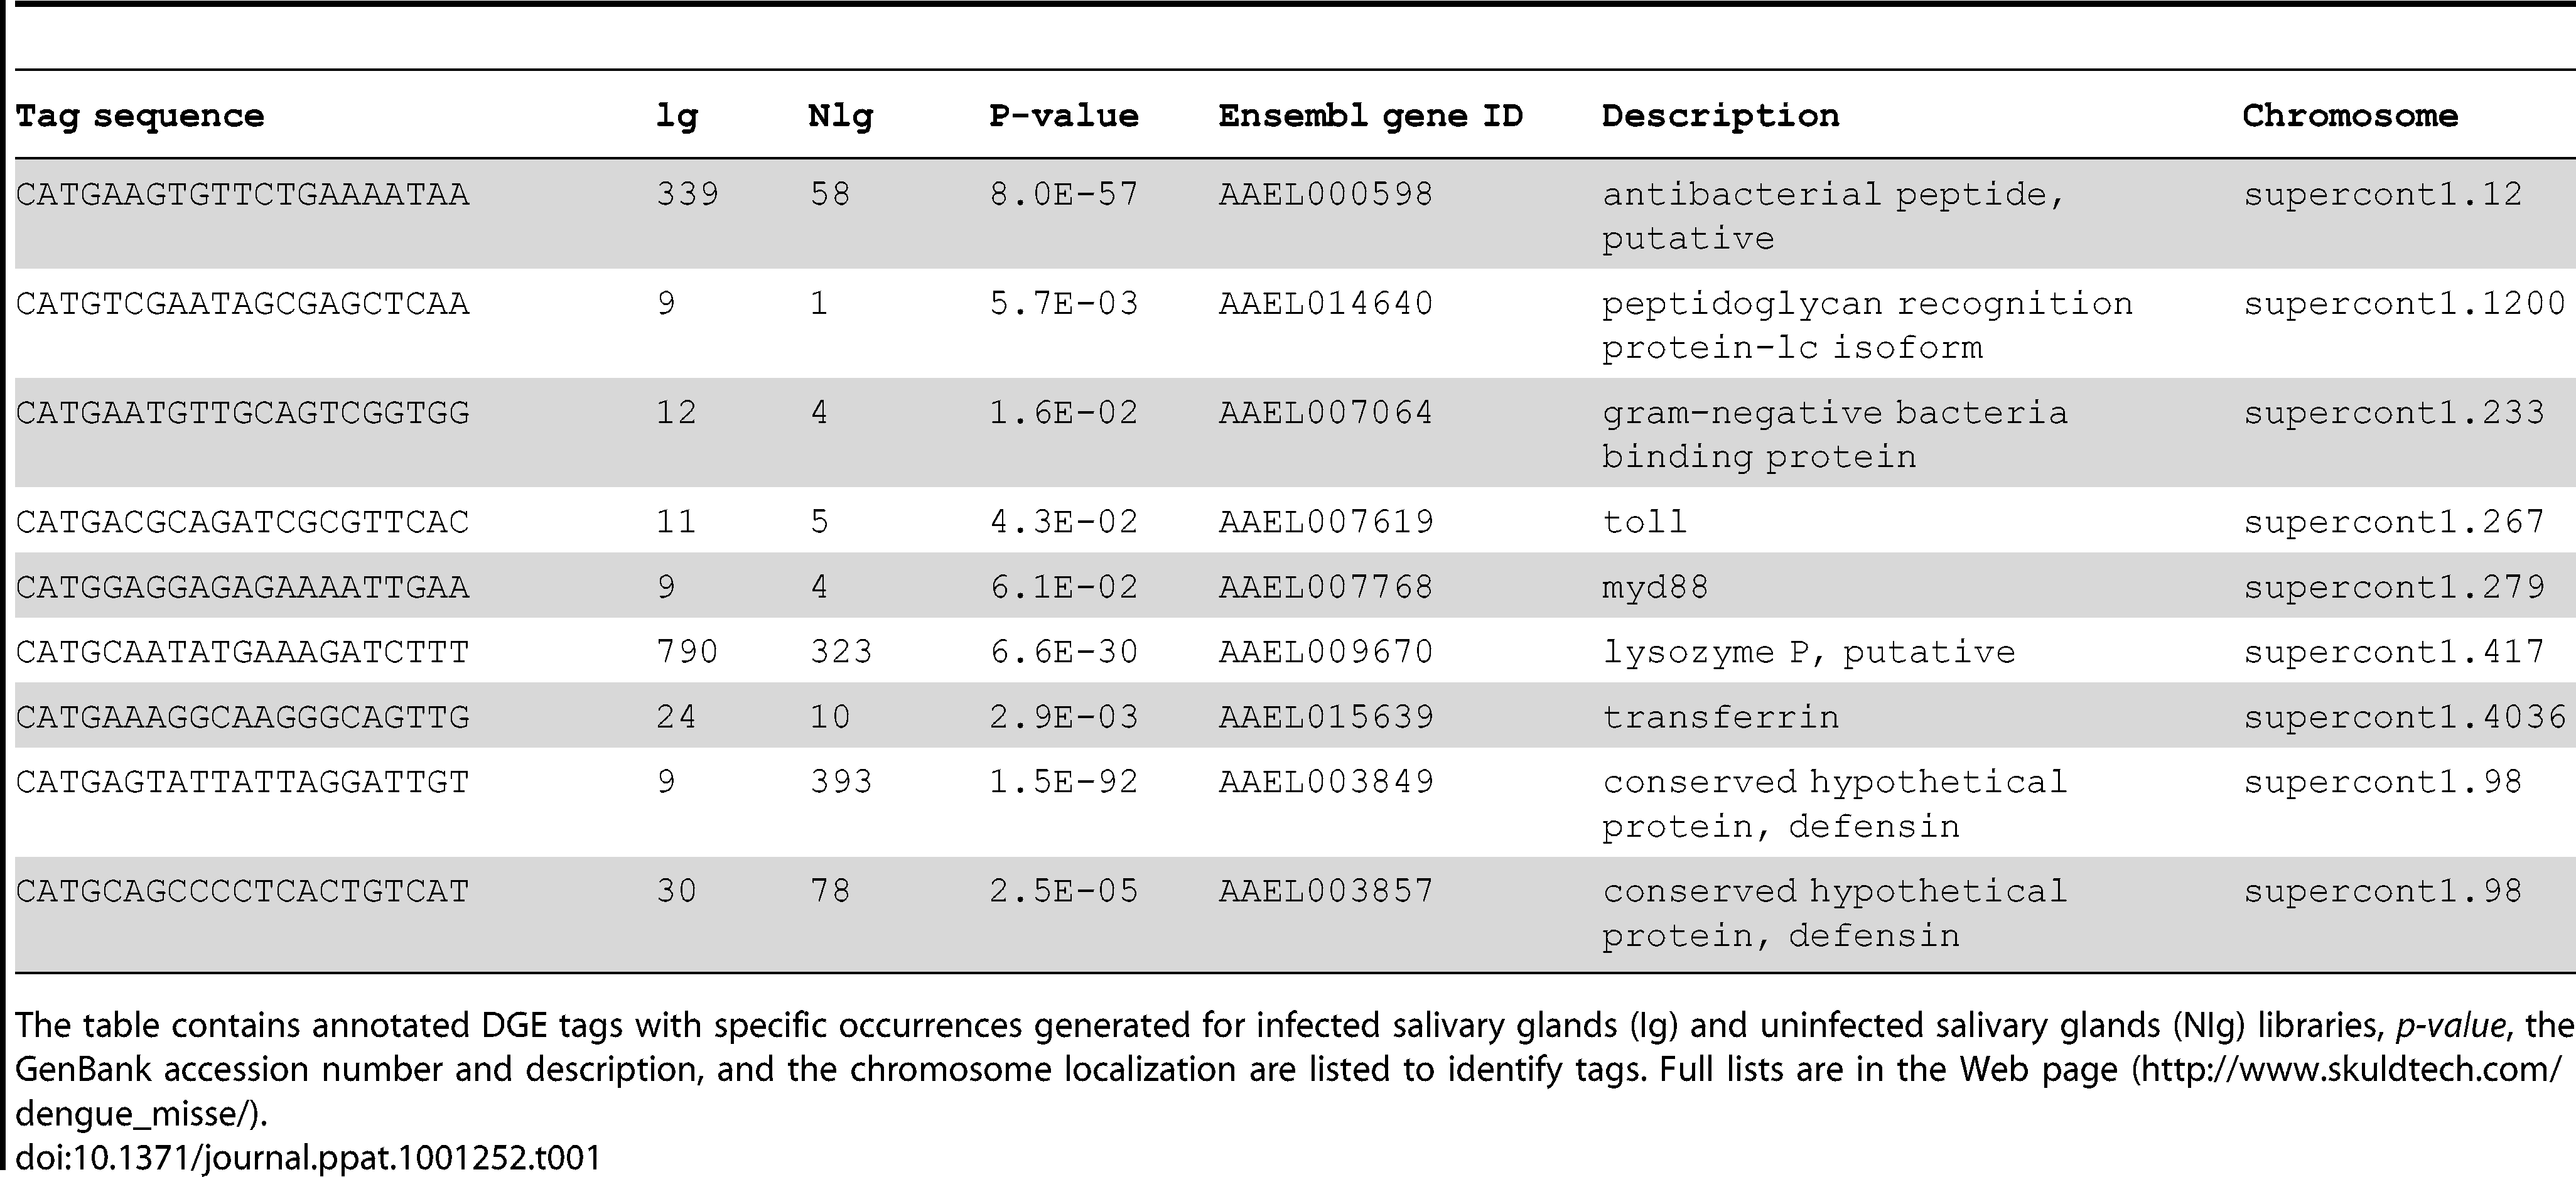 List of differentially expressed genes that are discussed in the text.